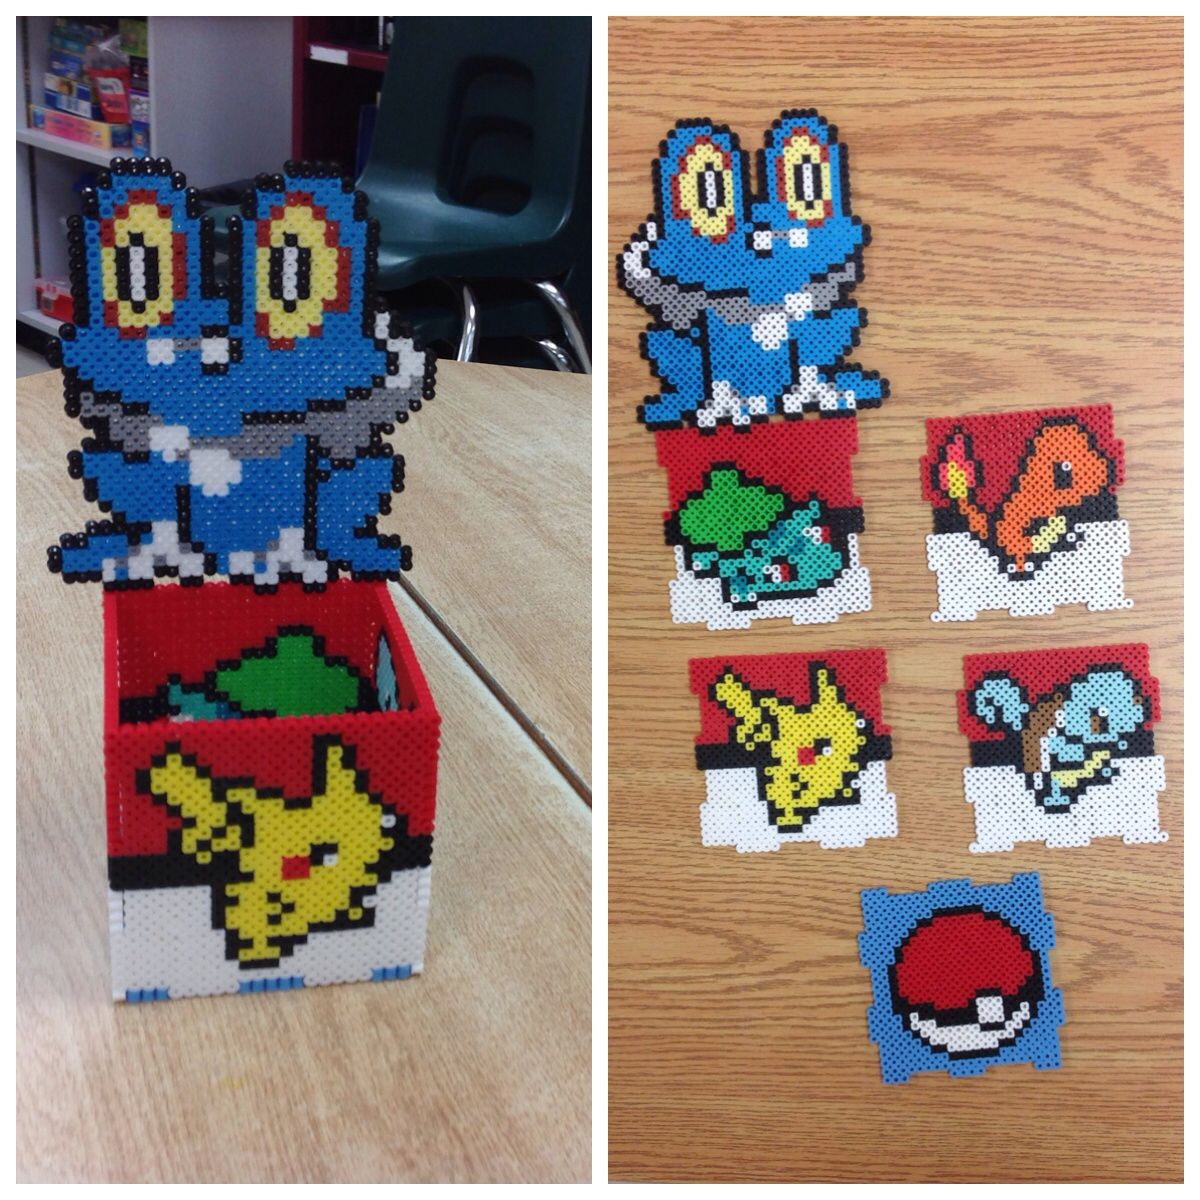 hight resolution of pokemon box perler beads by amanda collison easy perler bead patterns 3d perler bead